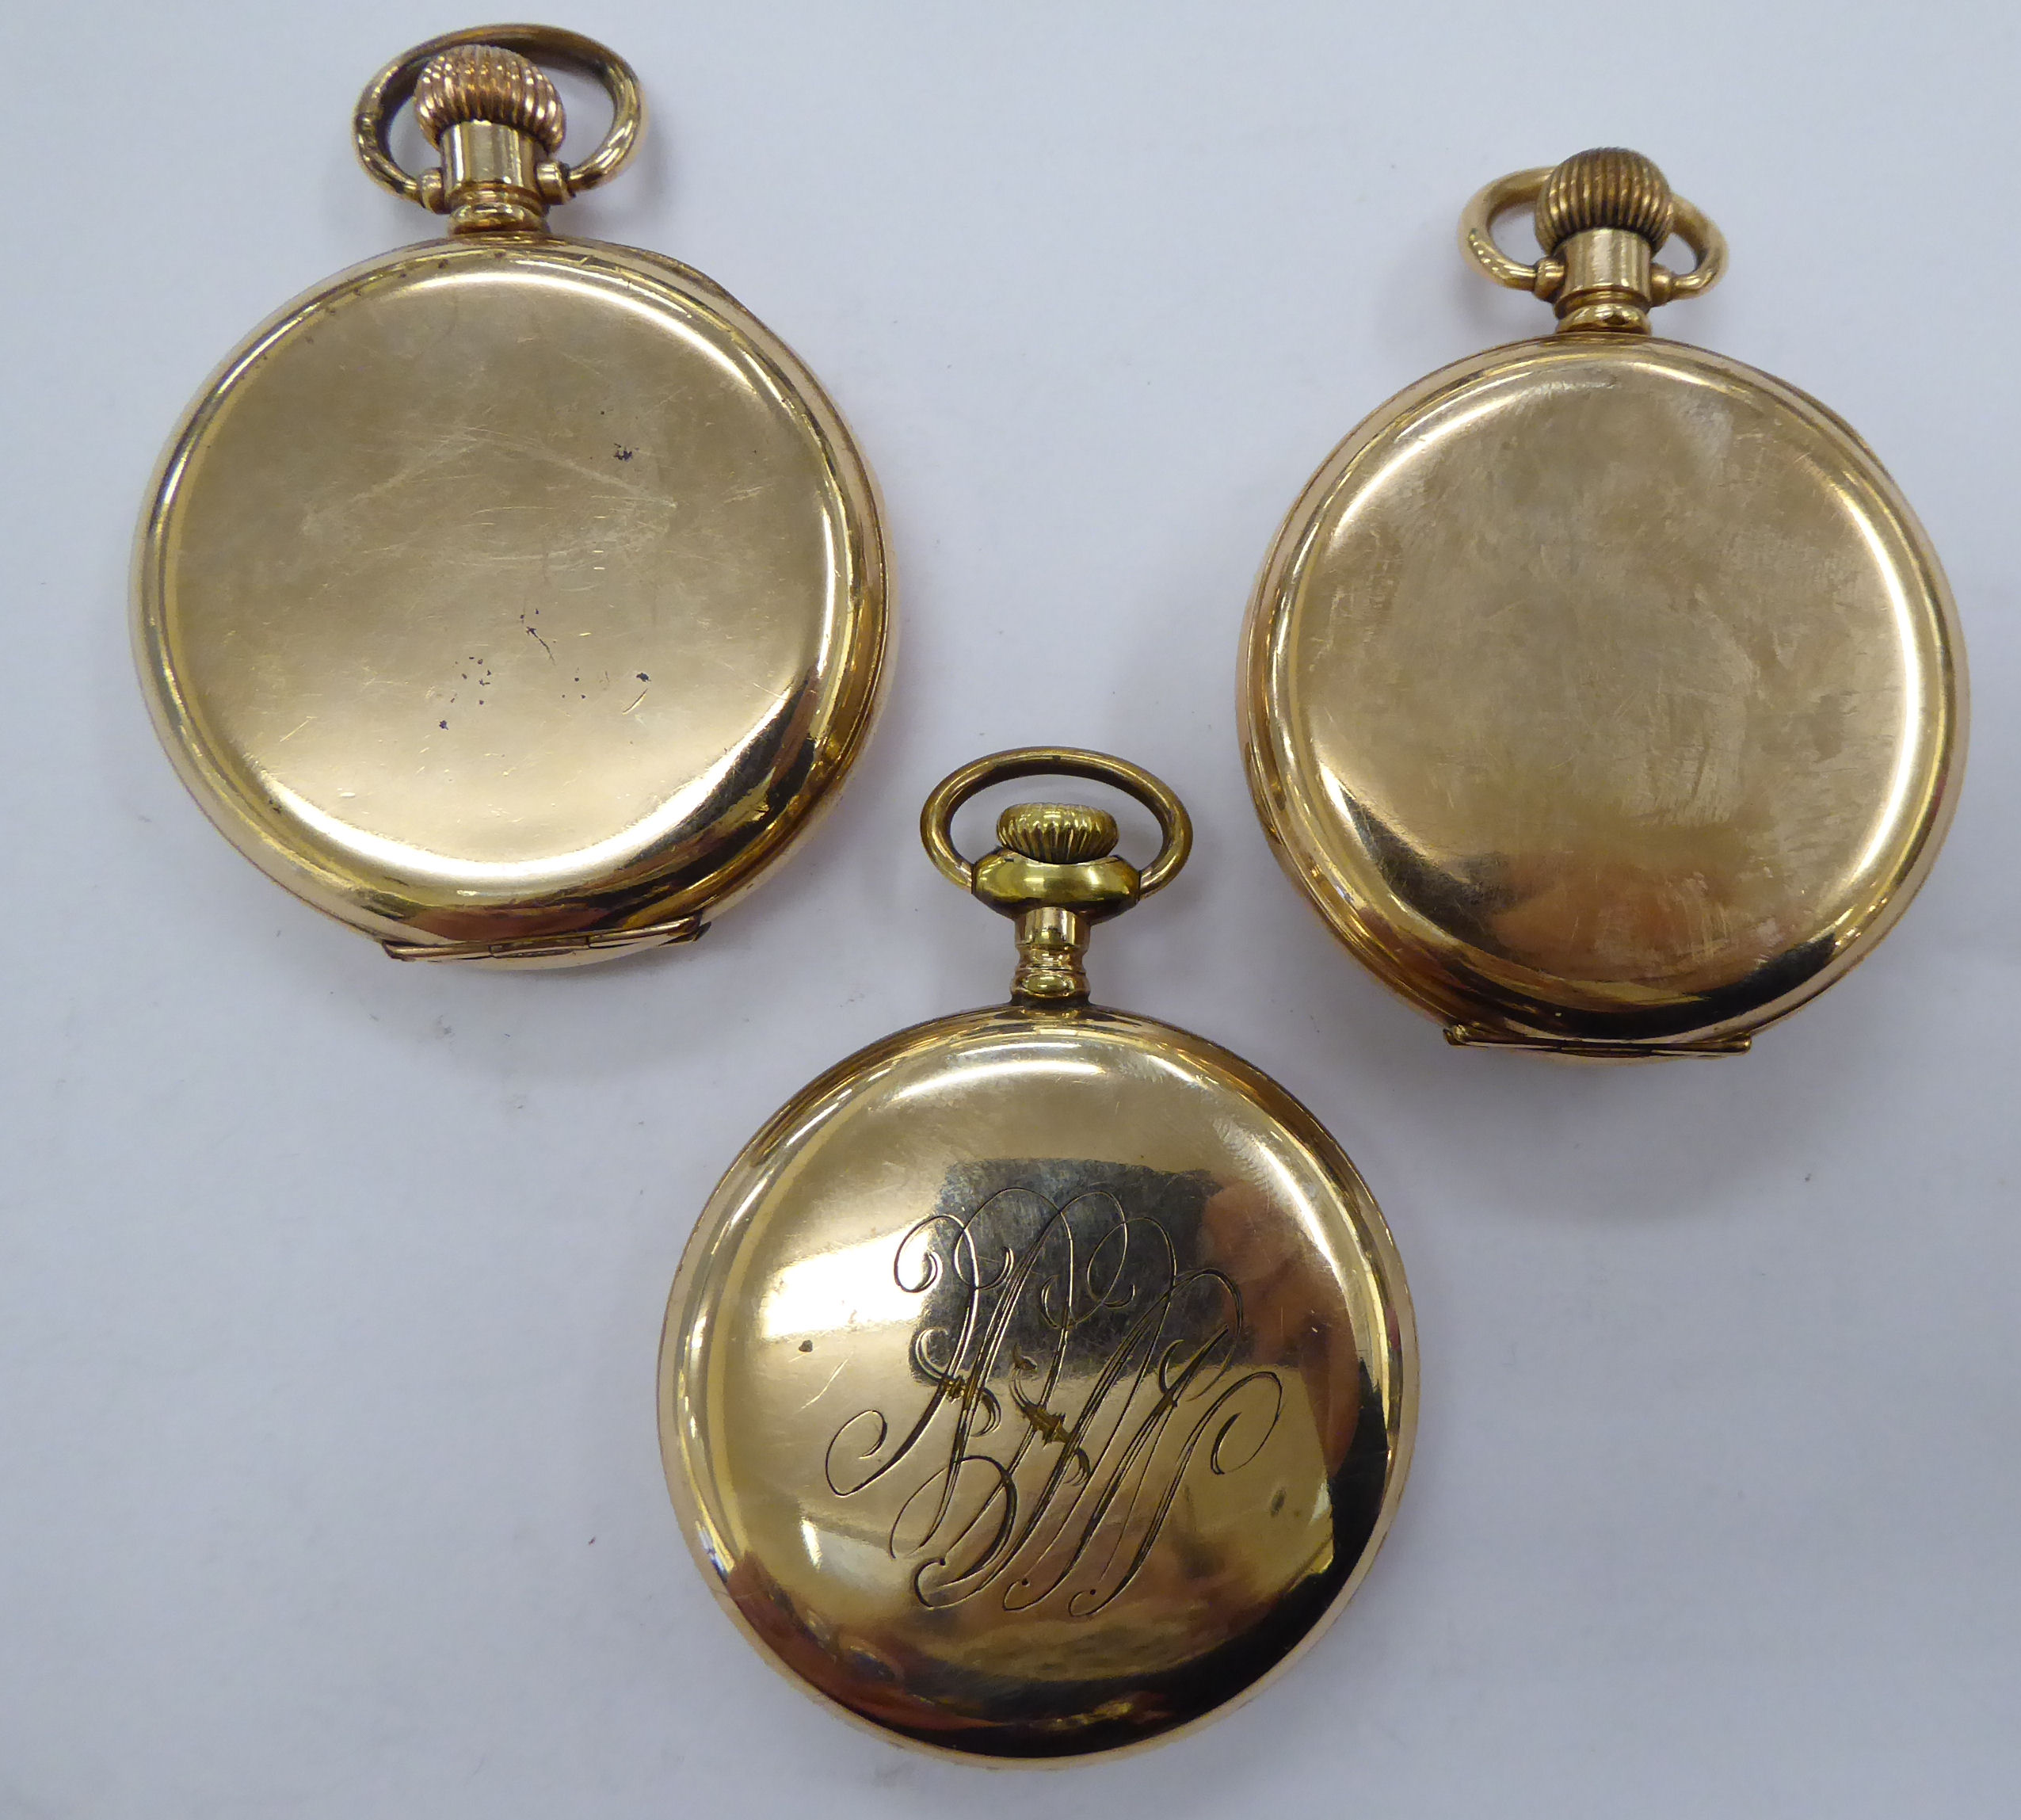 Lot 51 - Three late 19th/early 20thC gold plated pocket watches with enamel Roman and Arabic dials